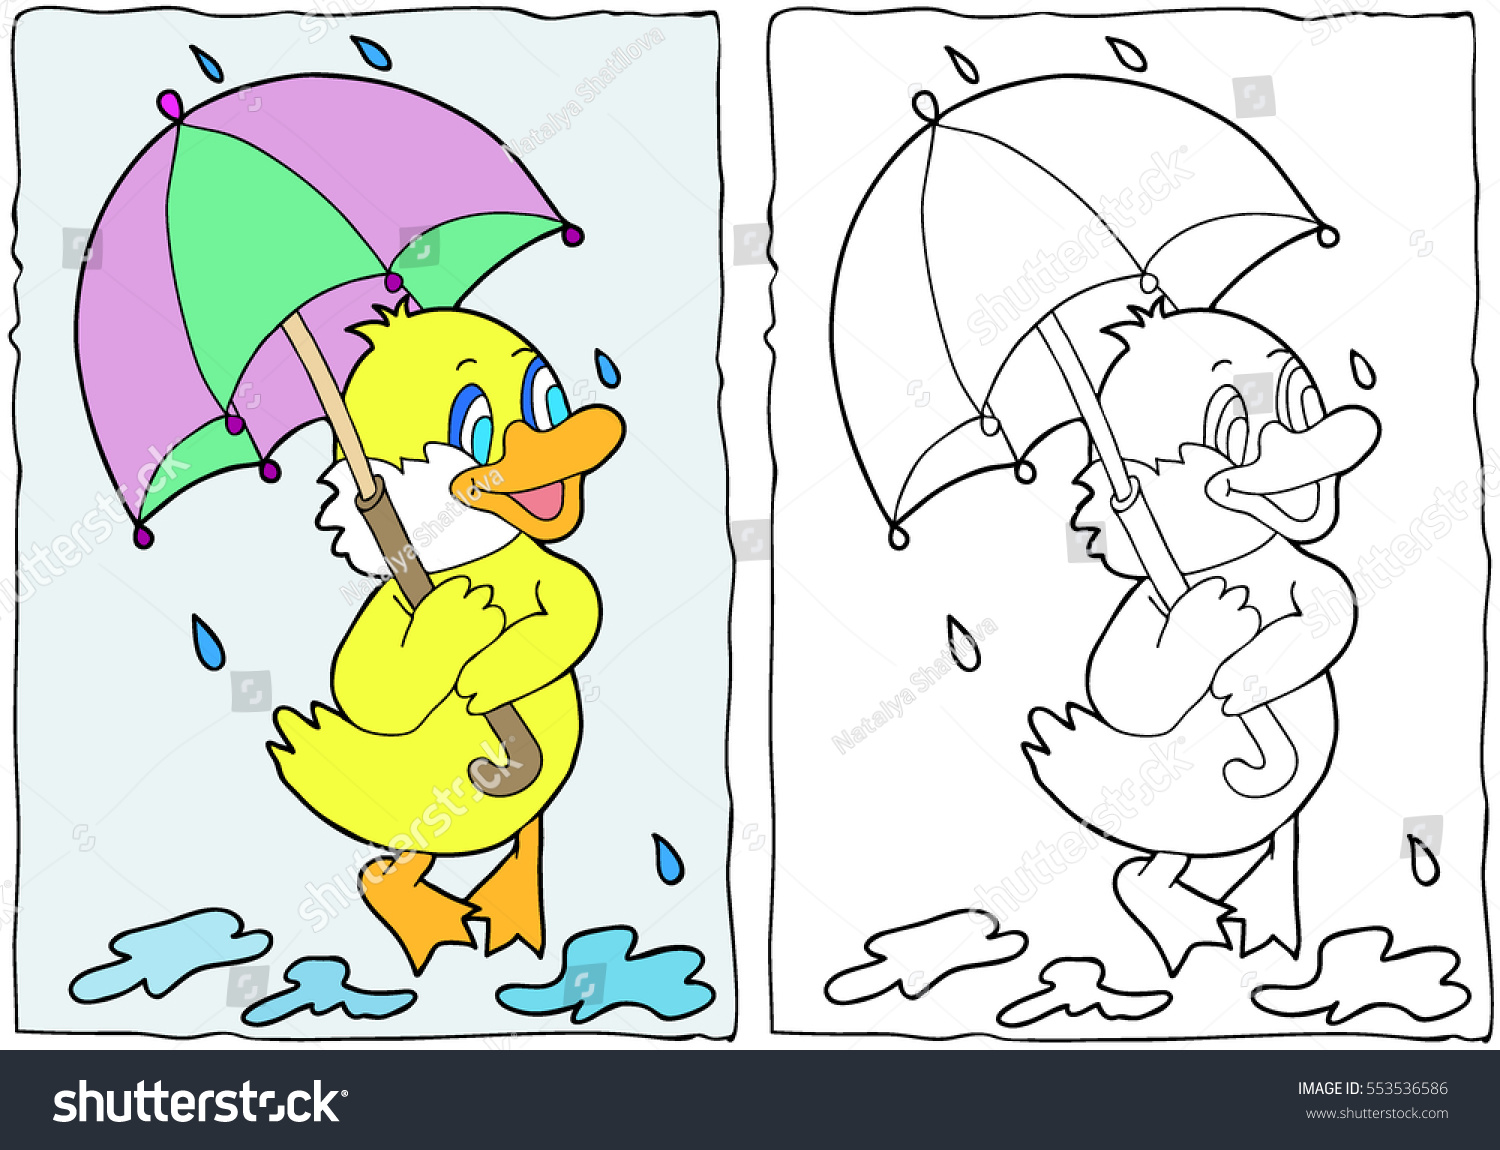 Coloring book Duck with an umbrella Hand drawn Black and white Children adults Color vector illustration